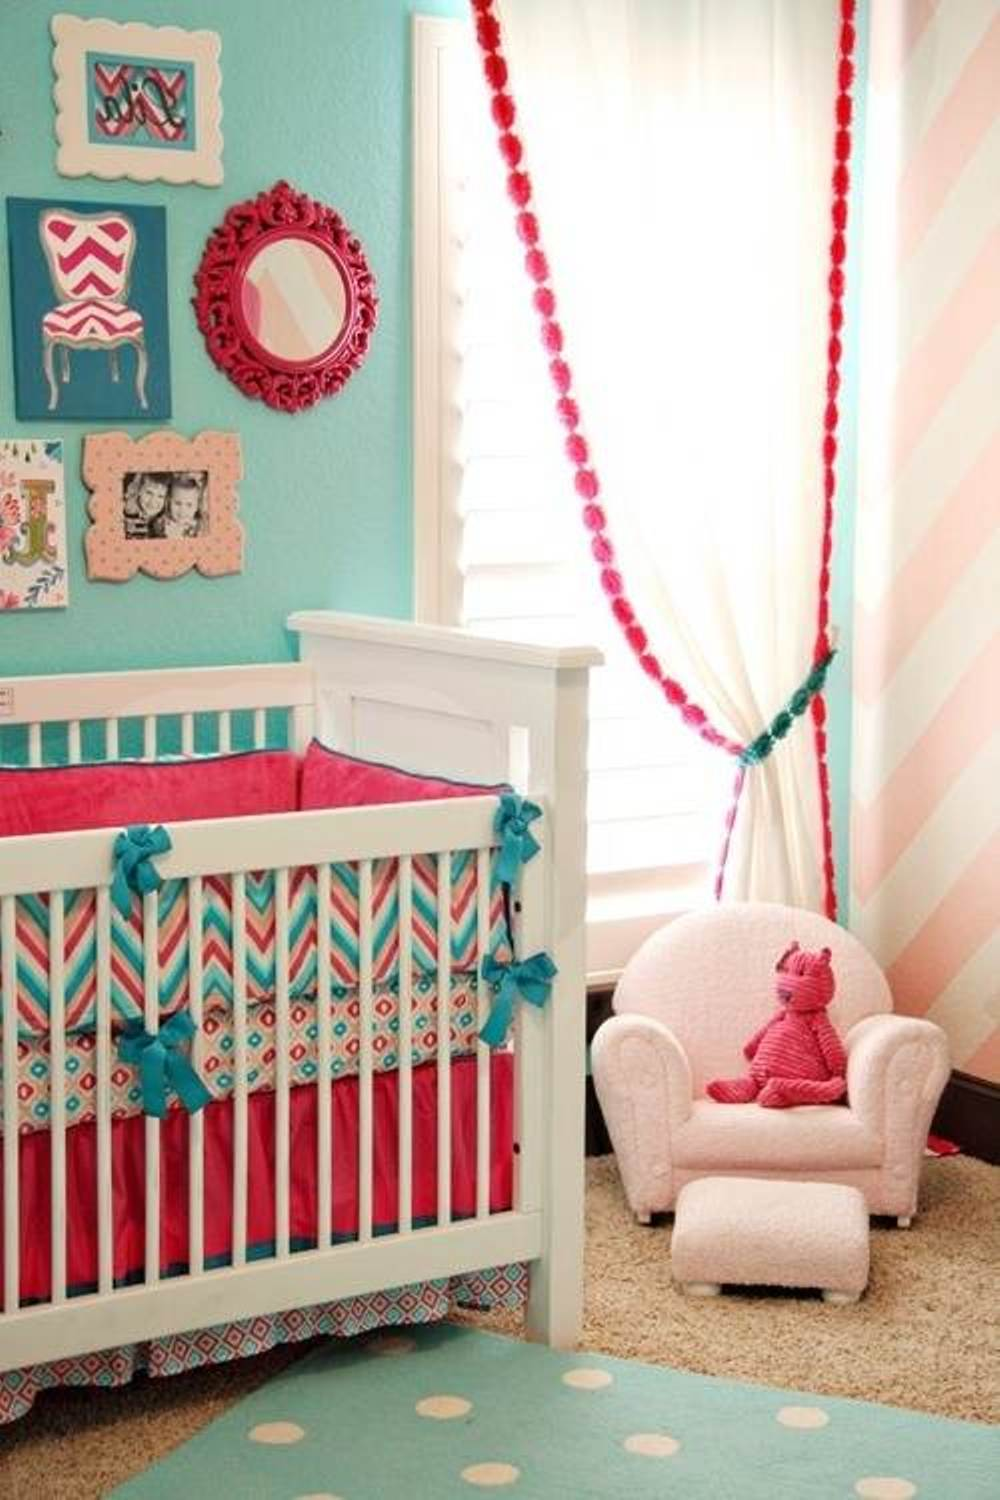 25 baby bedroom design ideas for your cutie pie Baby girl room ideas